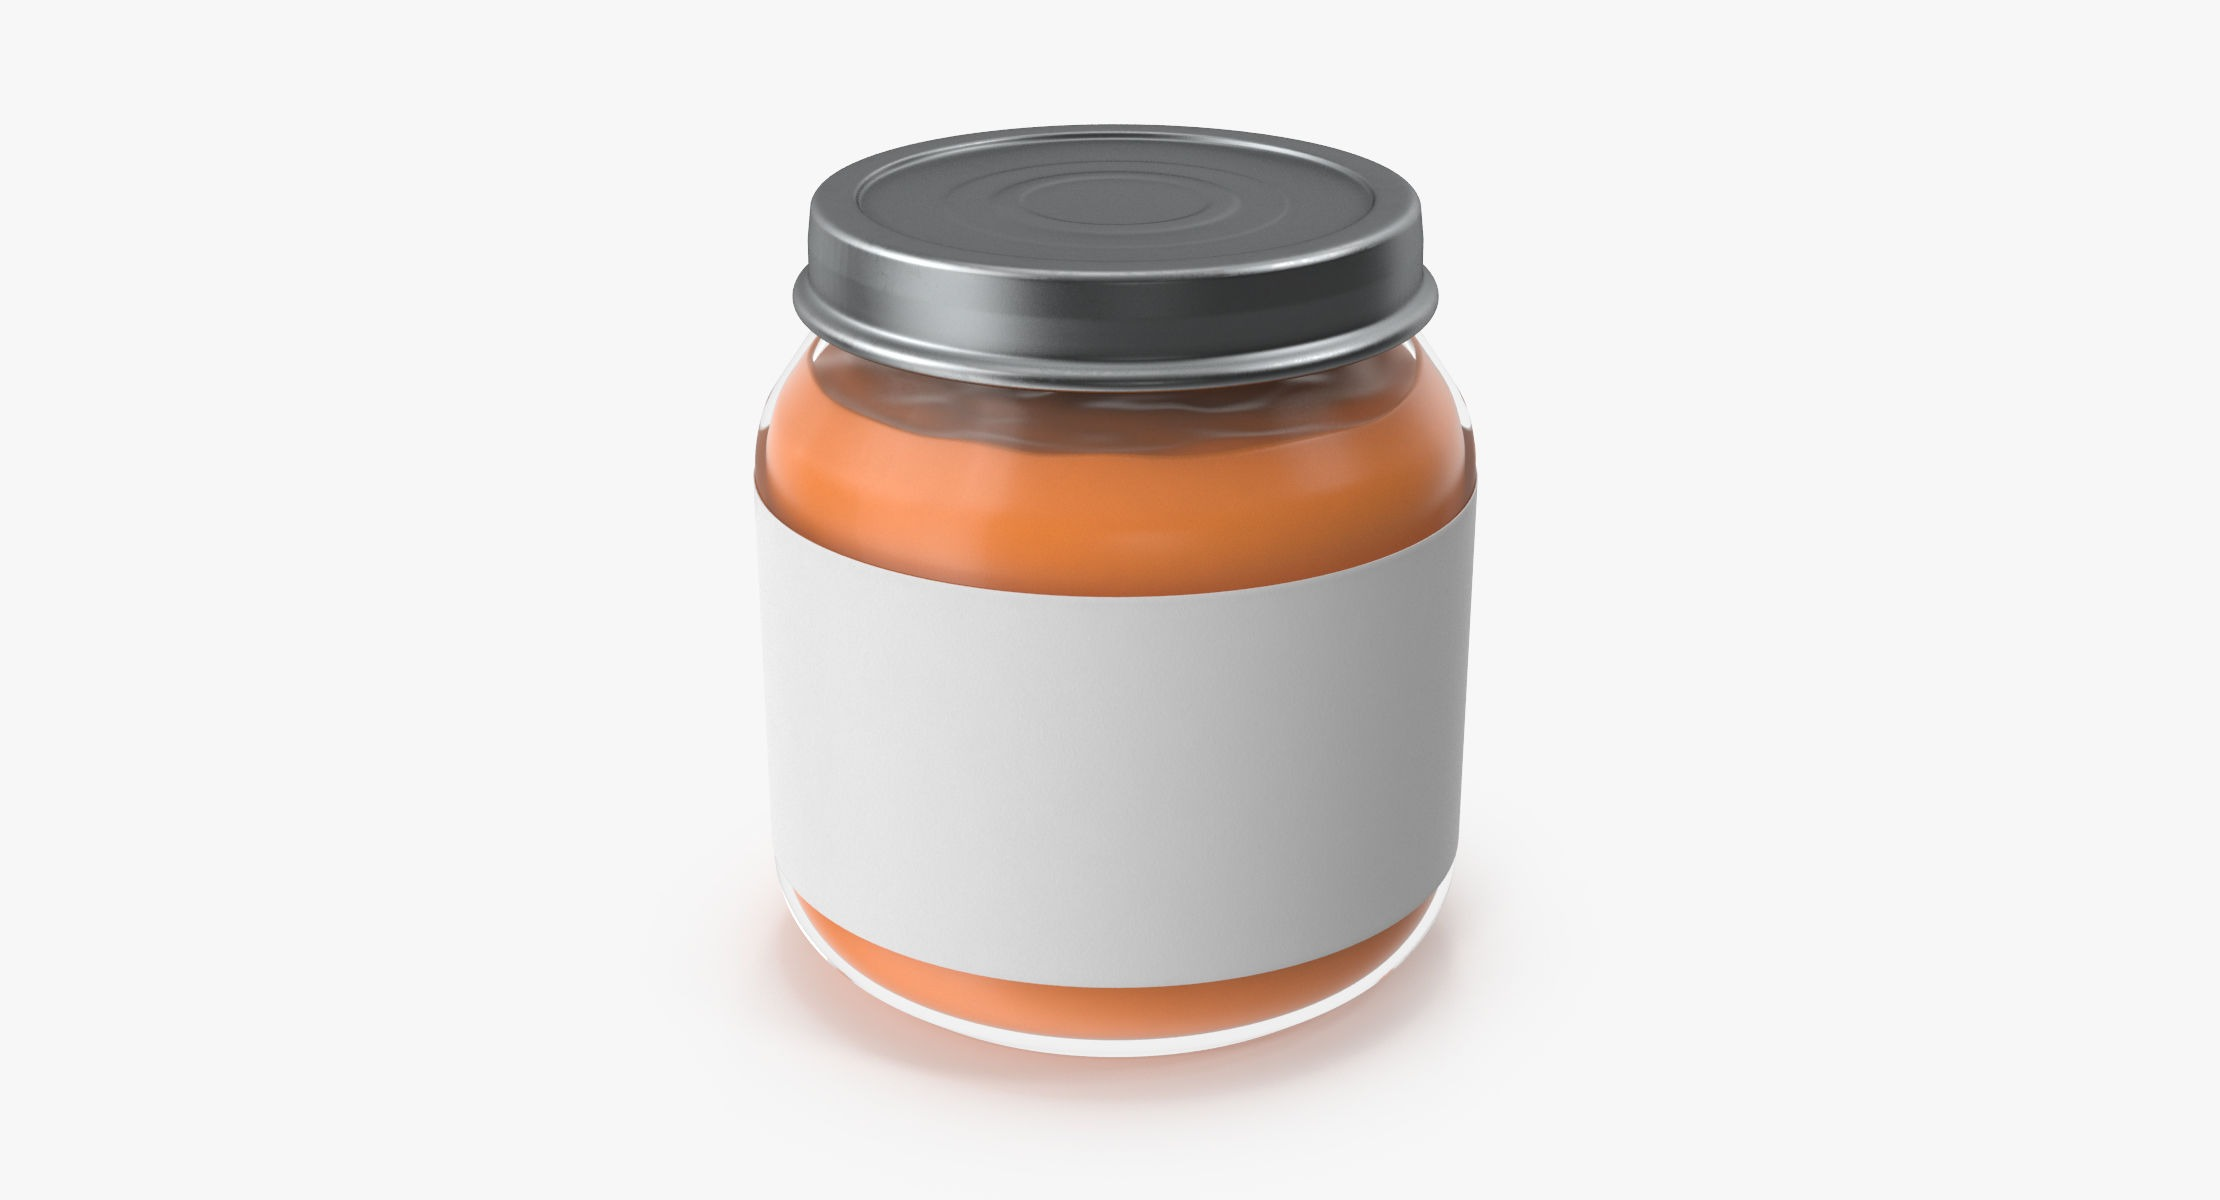 Baby Food Jar 02 - reel 1